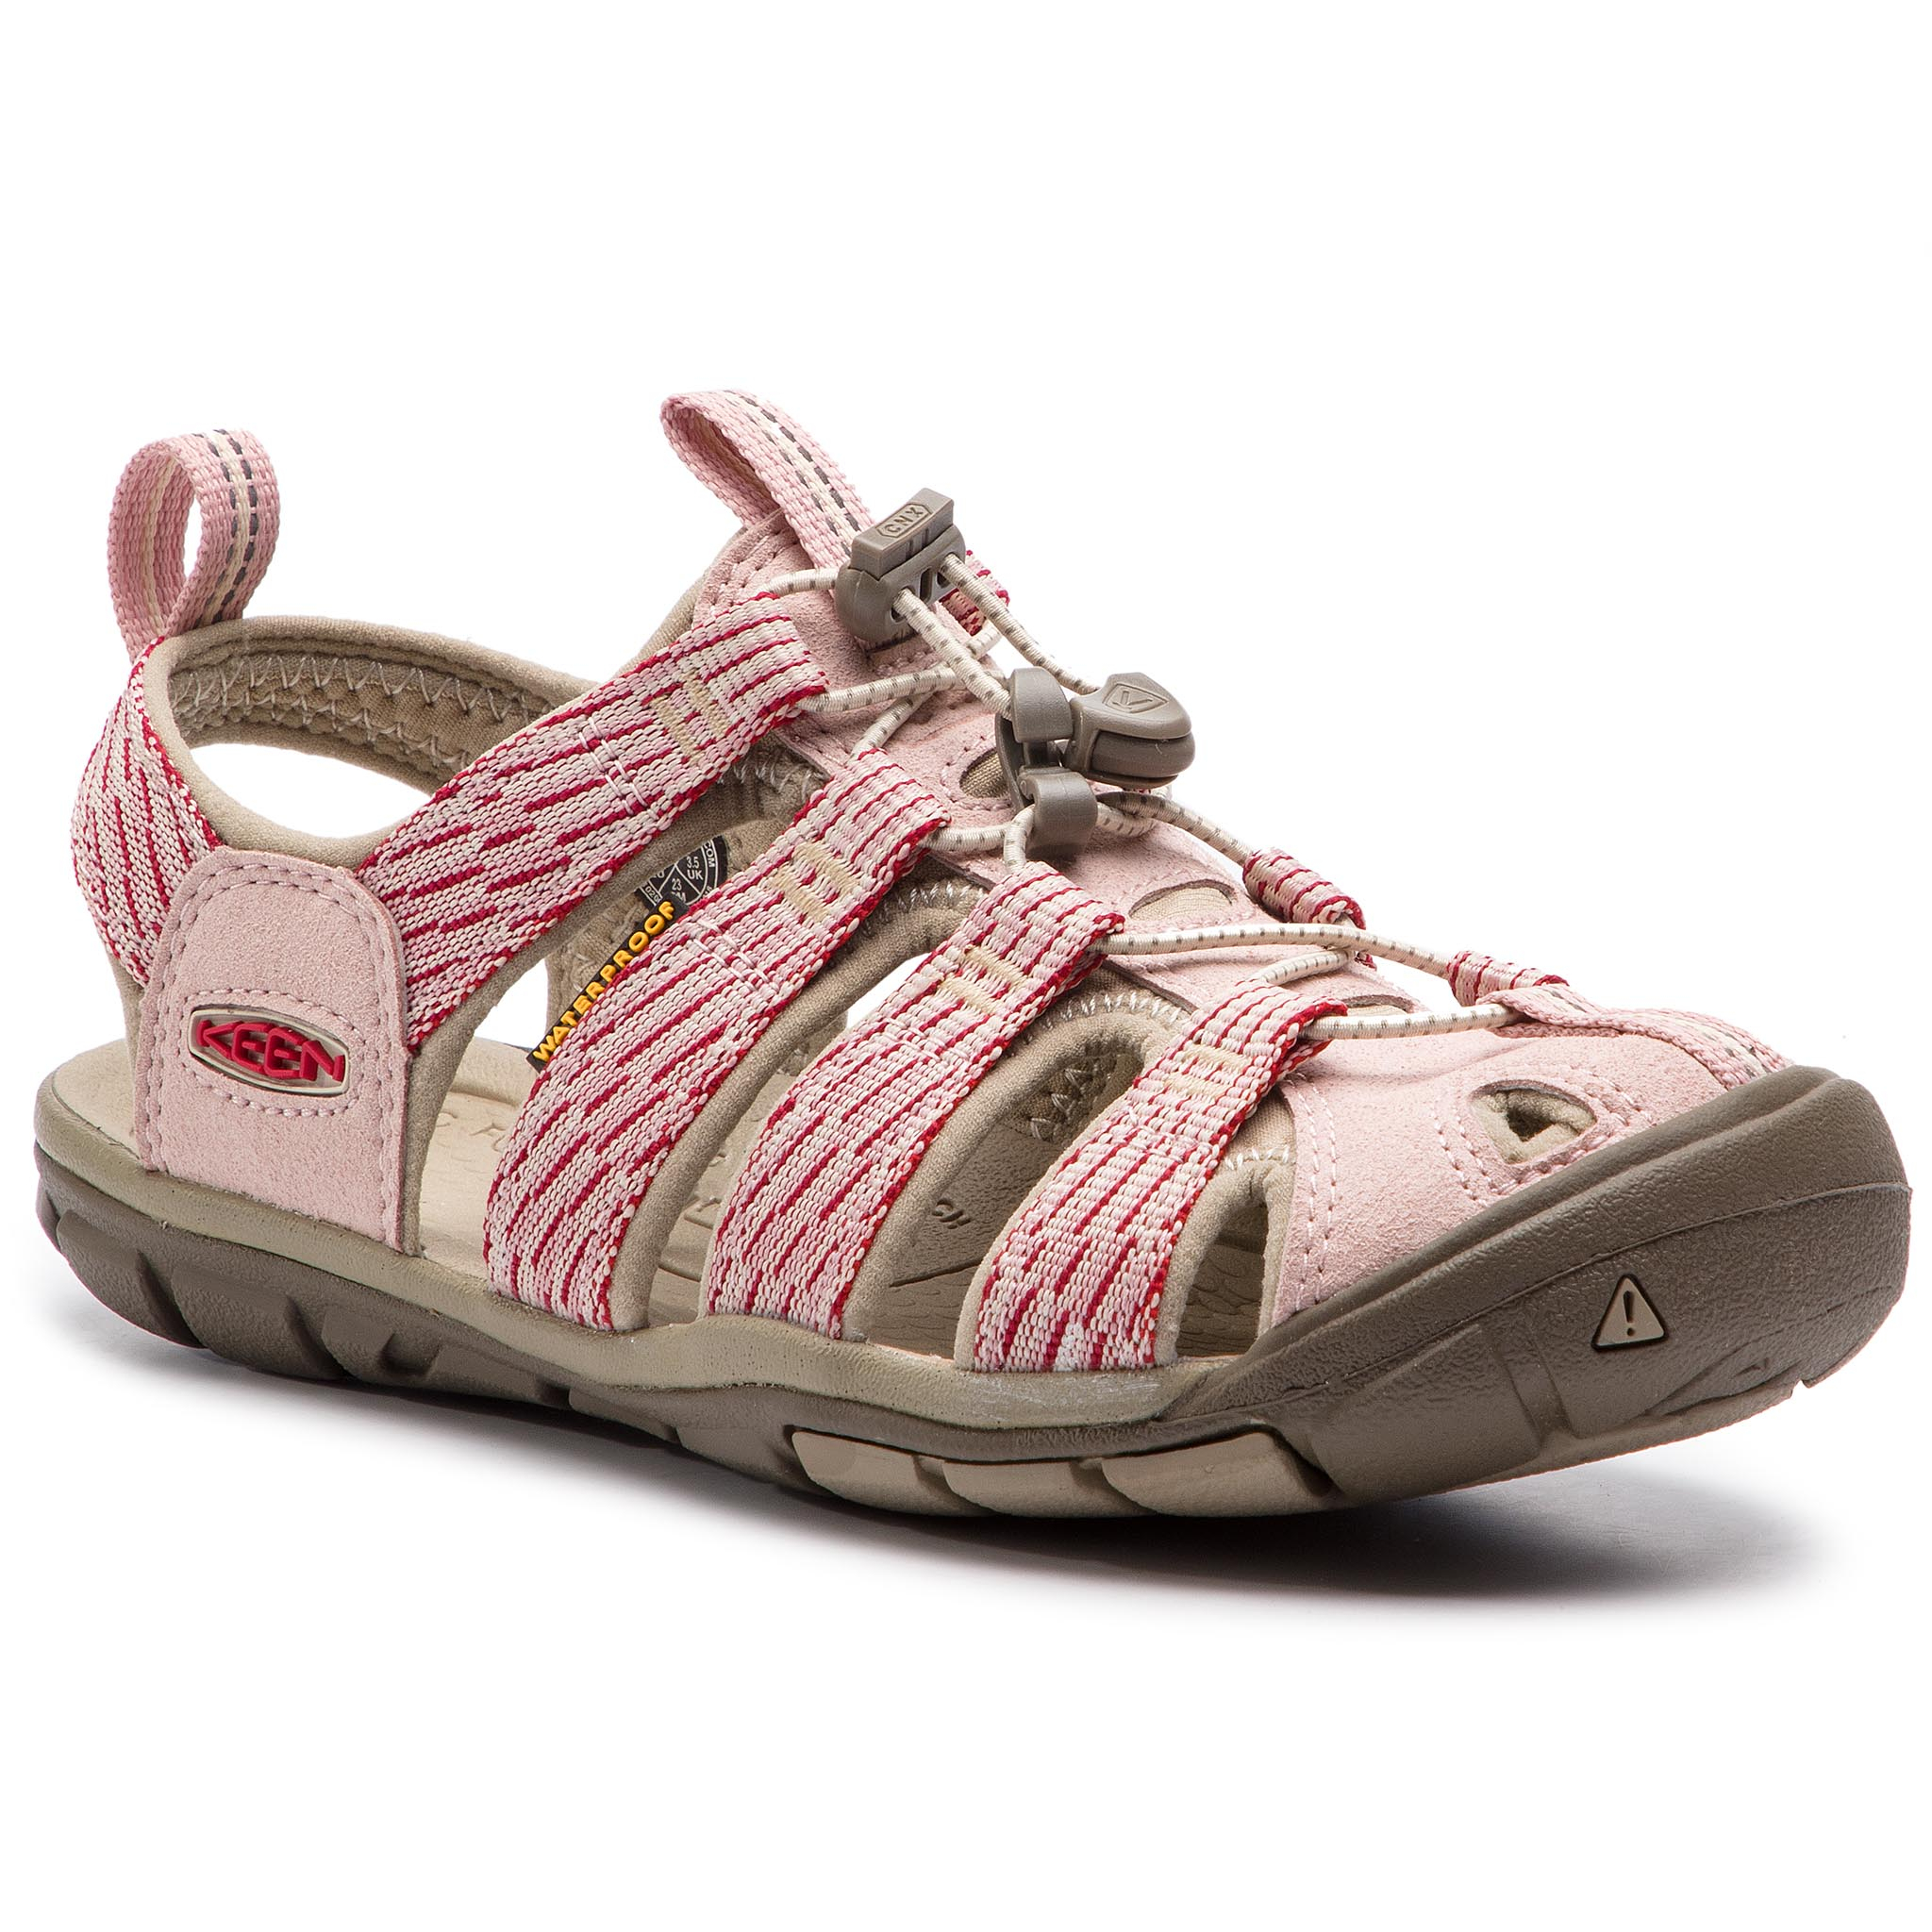 Basutės KEEN - Clearwater Cnx 1020665 Sepia Rose/Turtle Dove